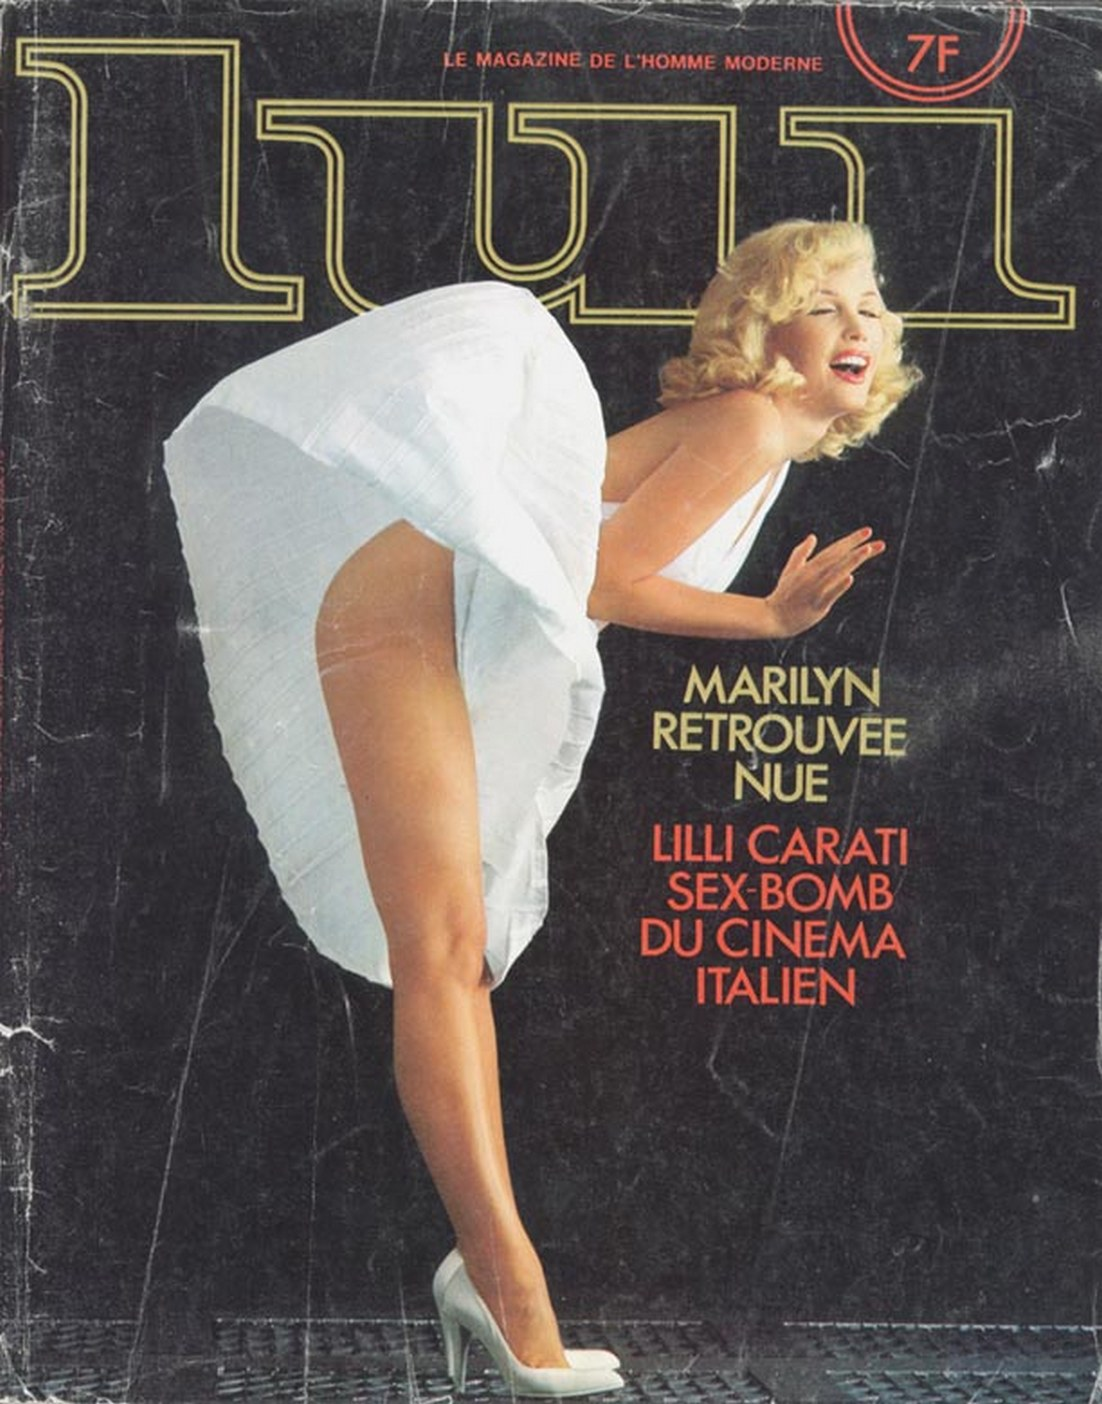 171 Marilyn Retreovee. Lui, 1970-е.